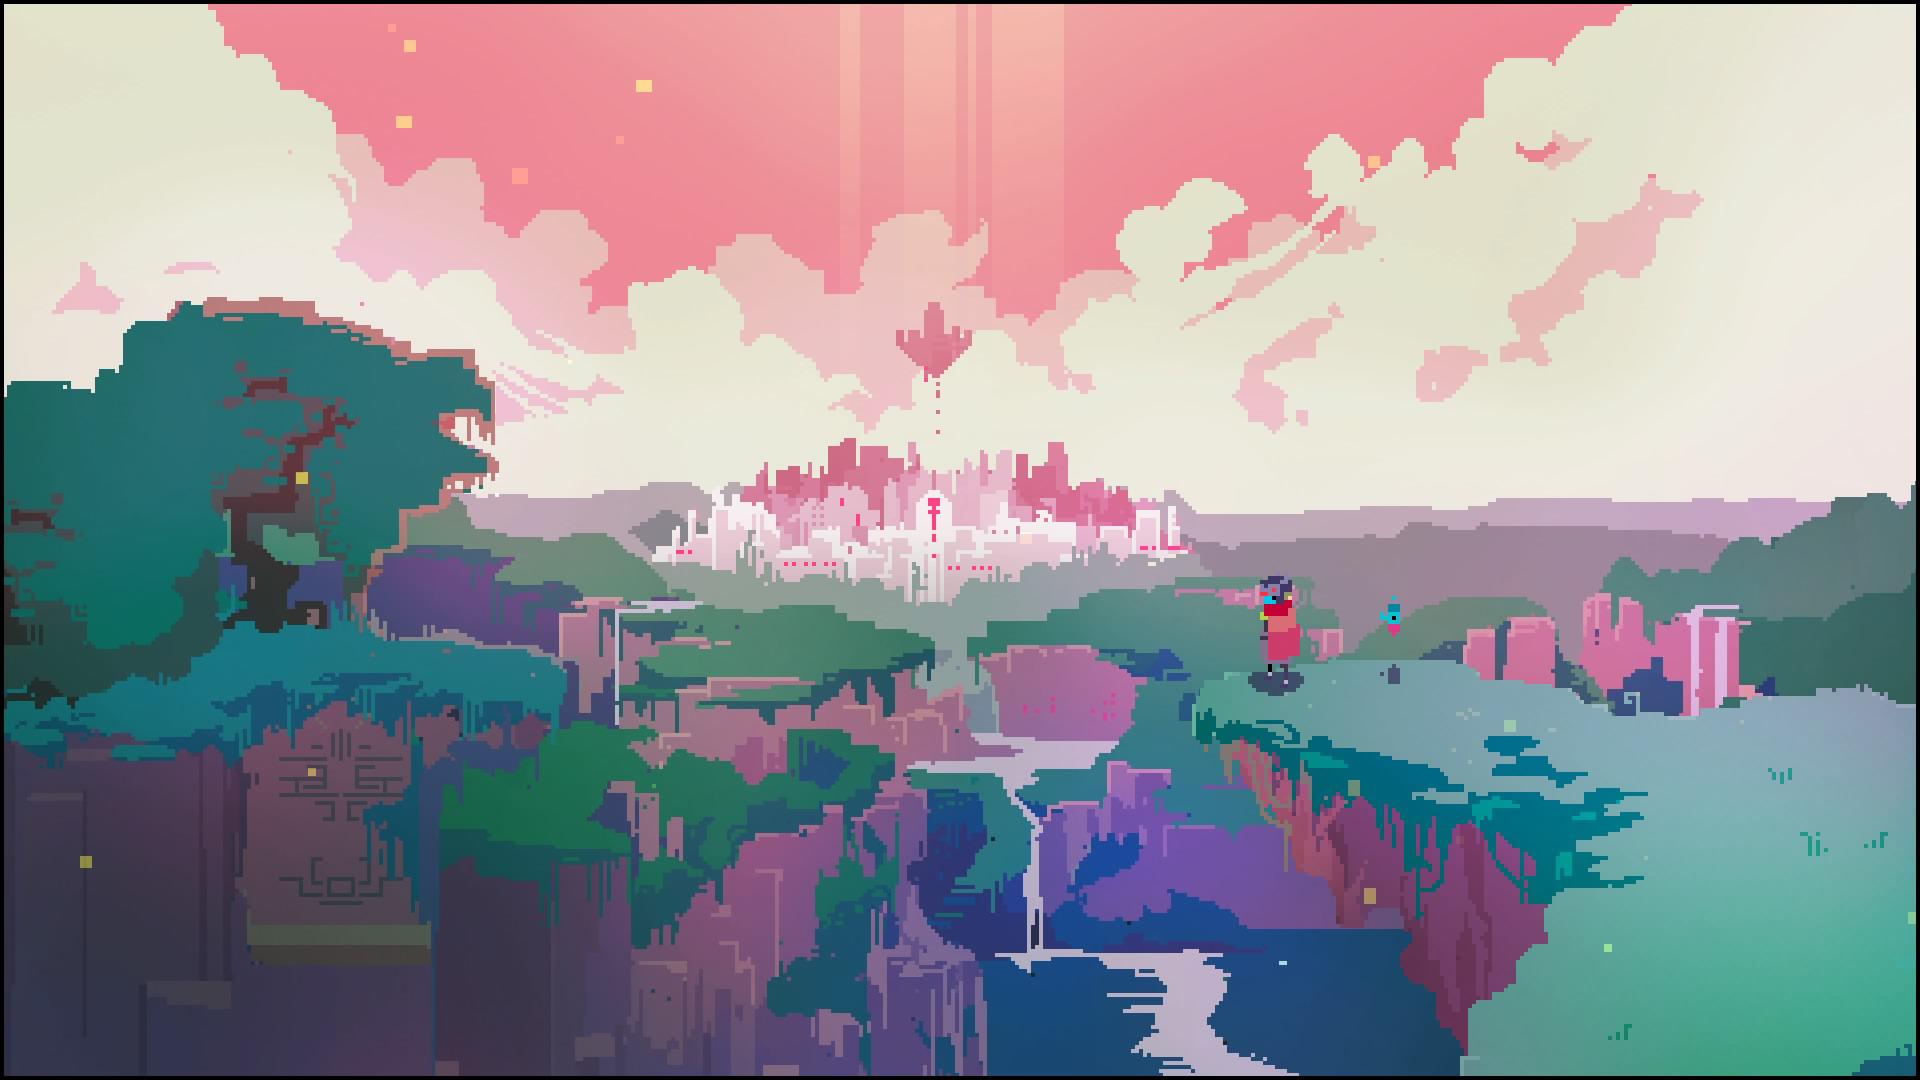 『Hyper Light Drifter』ゲーム画面